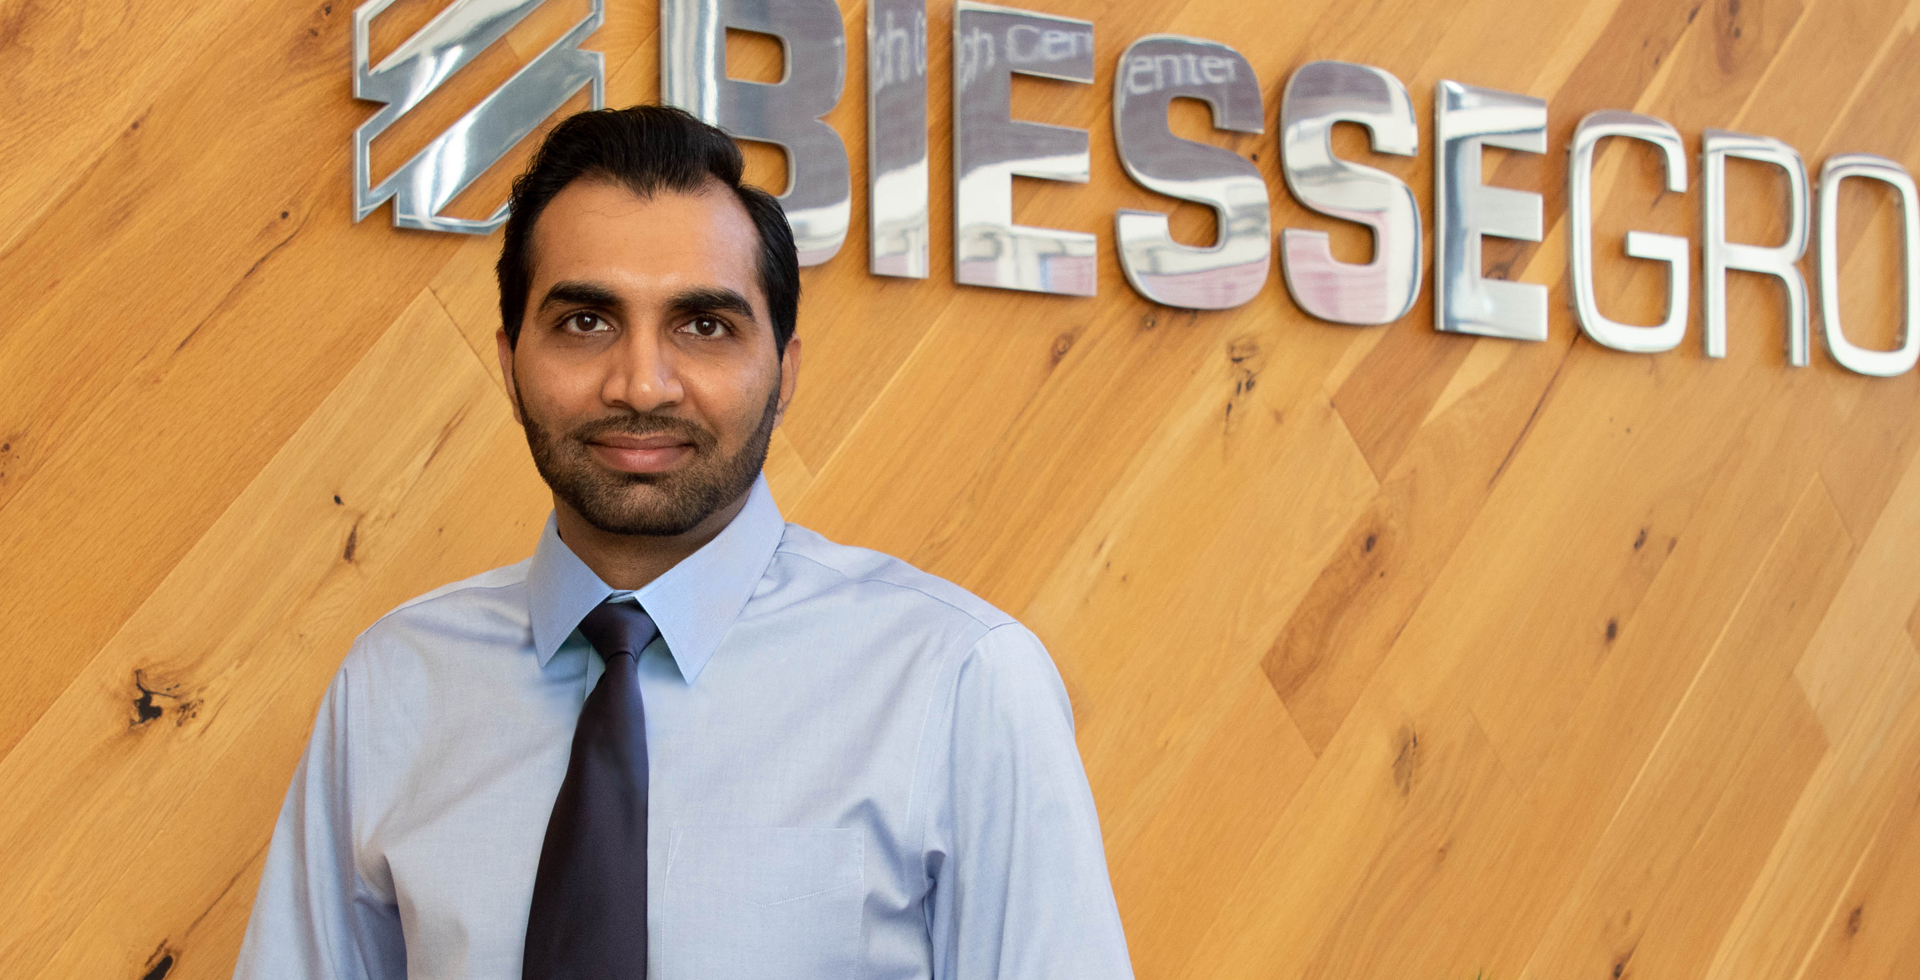 Biesse Welcomes New Area Manager for Florida